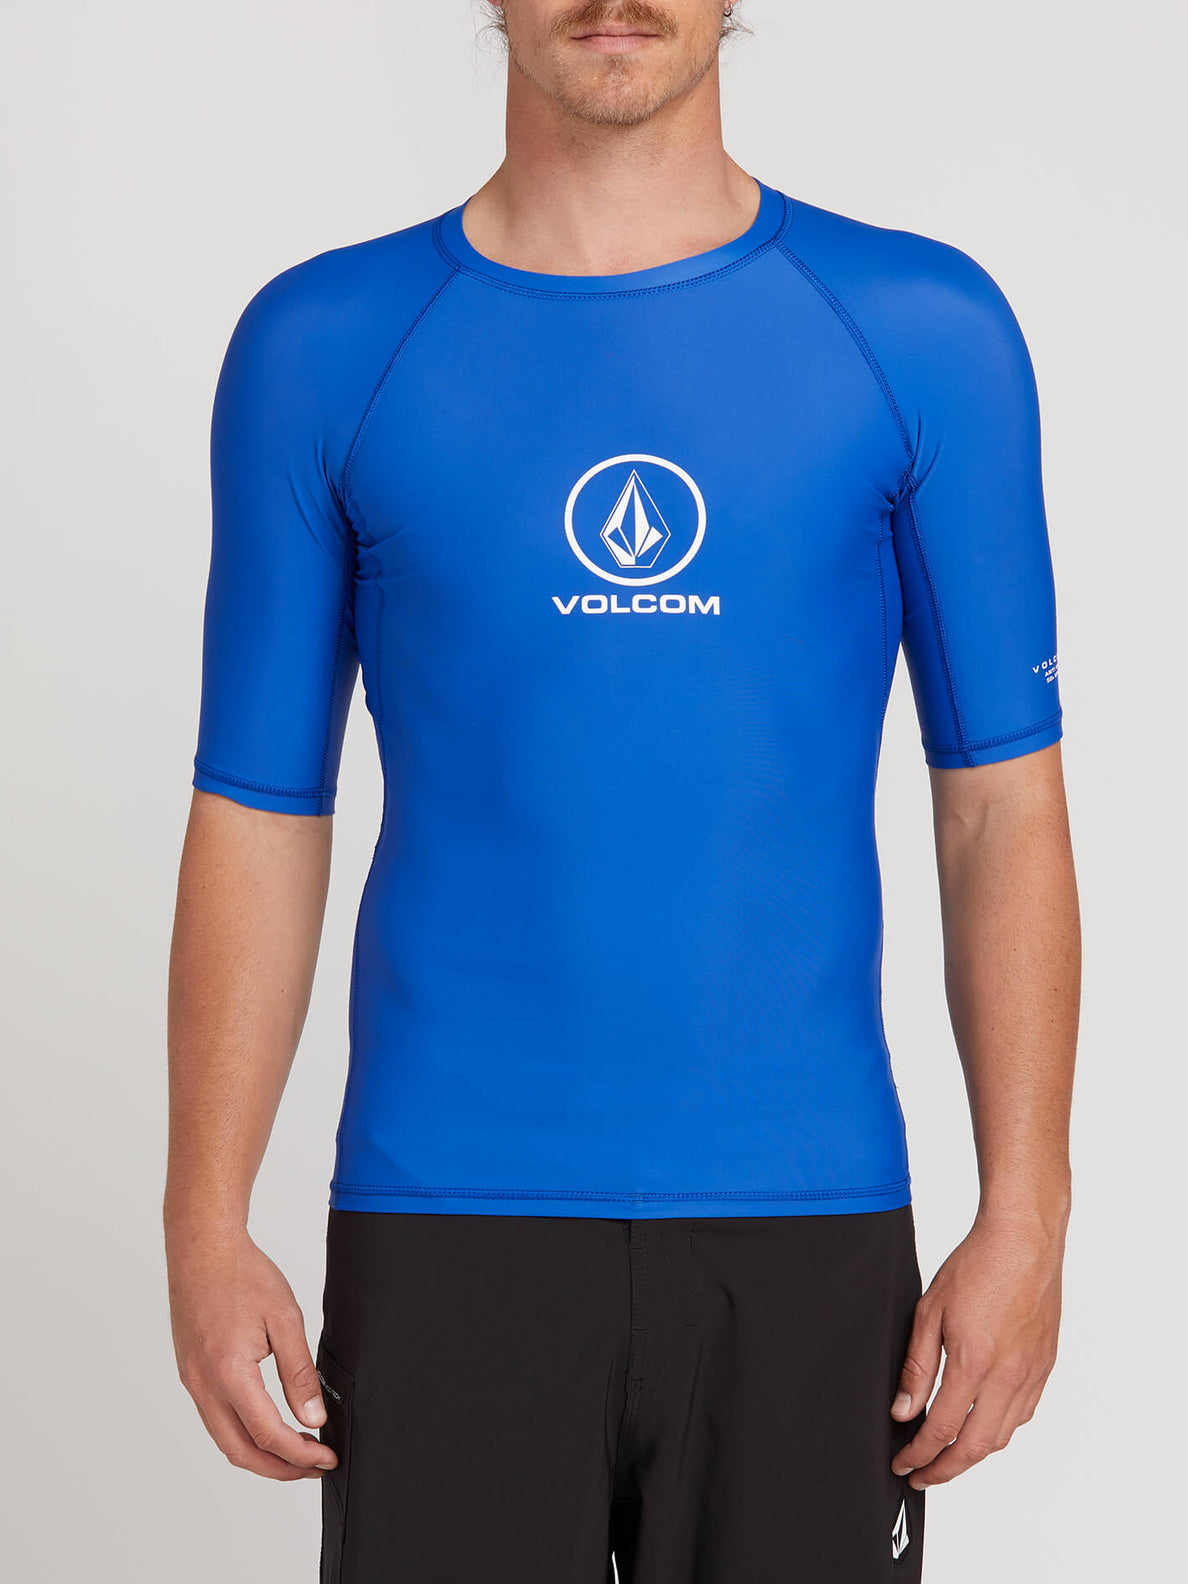 Lido Solid Short Sleeve Rashguard In Snow Royal, Front View